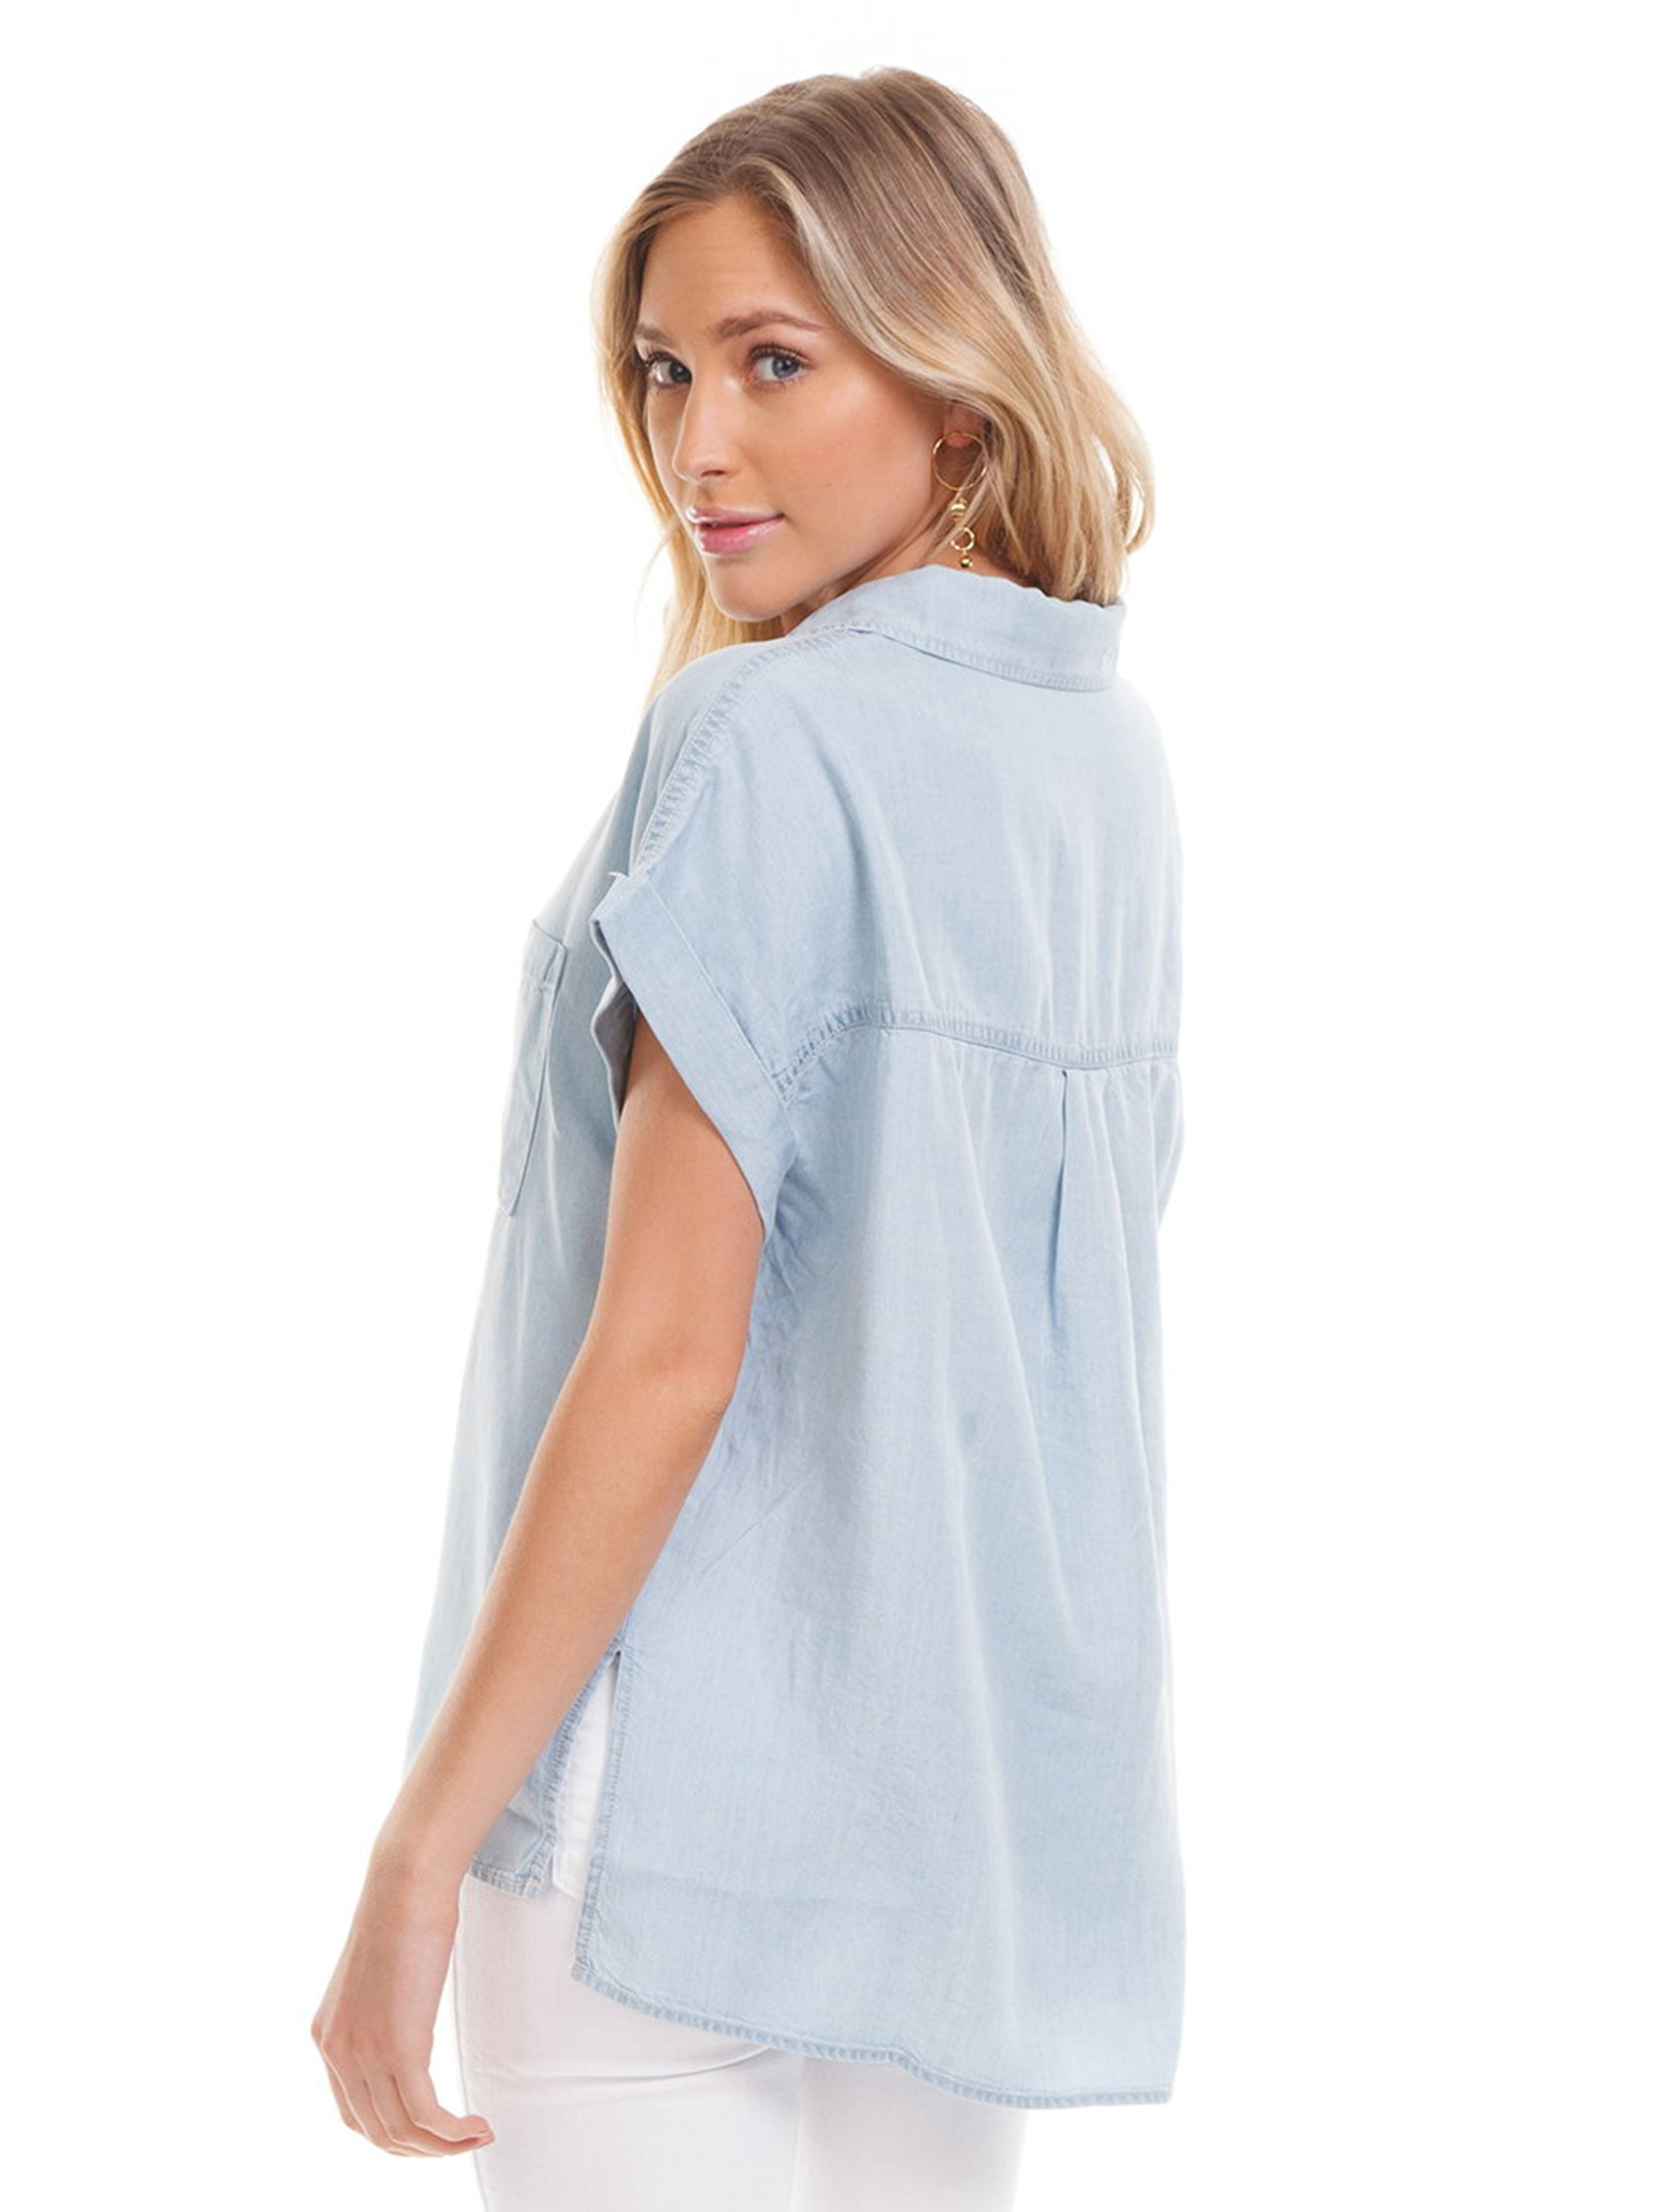 Women outfit in a top rental from SANCTUARY called Mod Short Sleeve Boyfriend Shirt